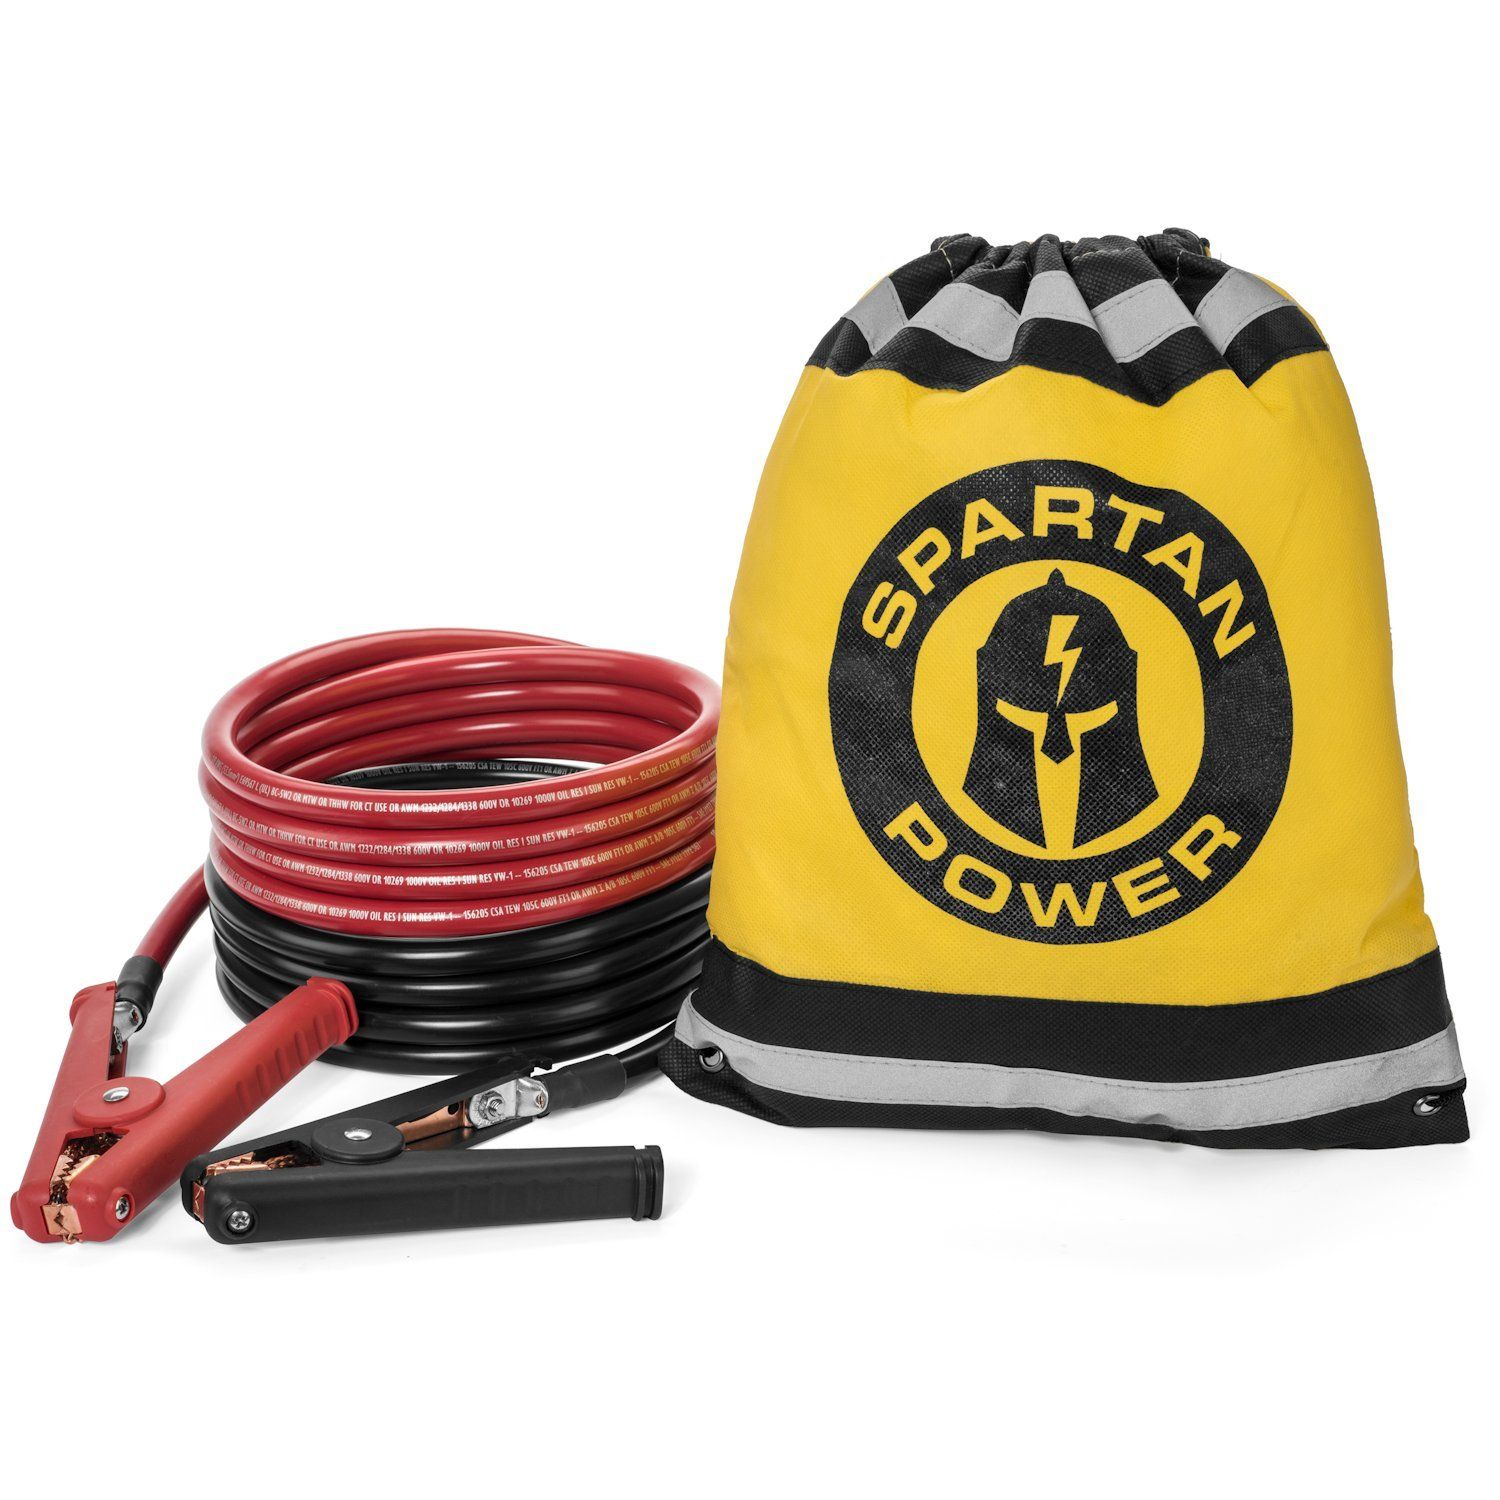 15 Foot 1 0 Awg 0 Gauge Heavy Duty Jumper Cables Booster Set By Spartan Power 1 0 Awg 15 Foot Made In The Usa Check Ou Heavy Duty Yellow Storage 10 Feet